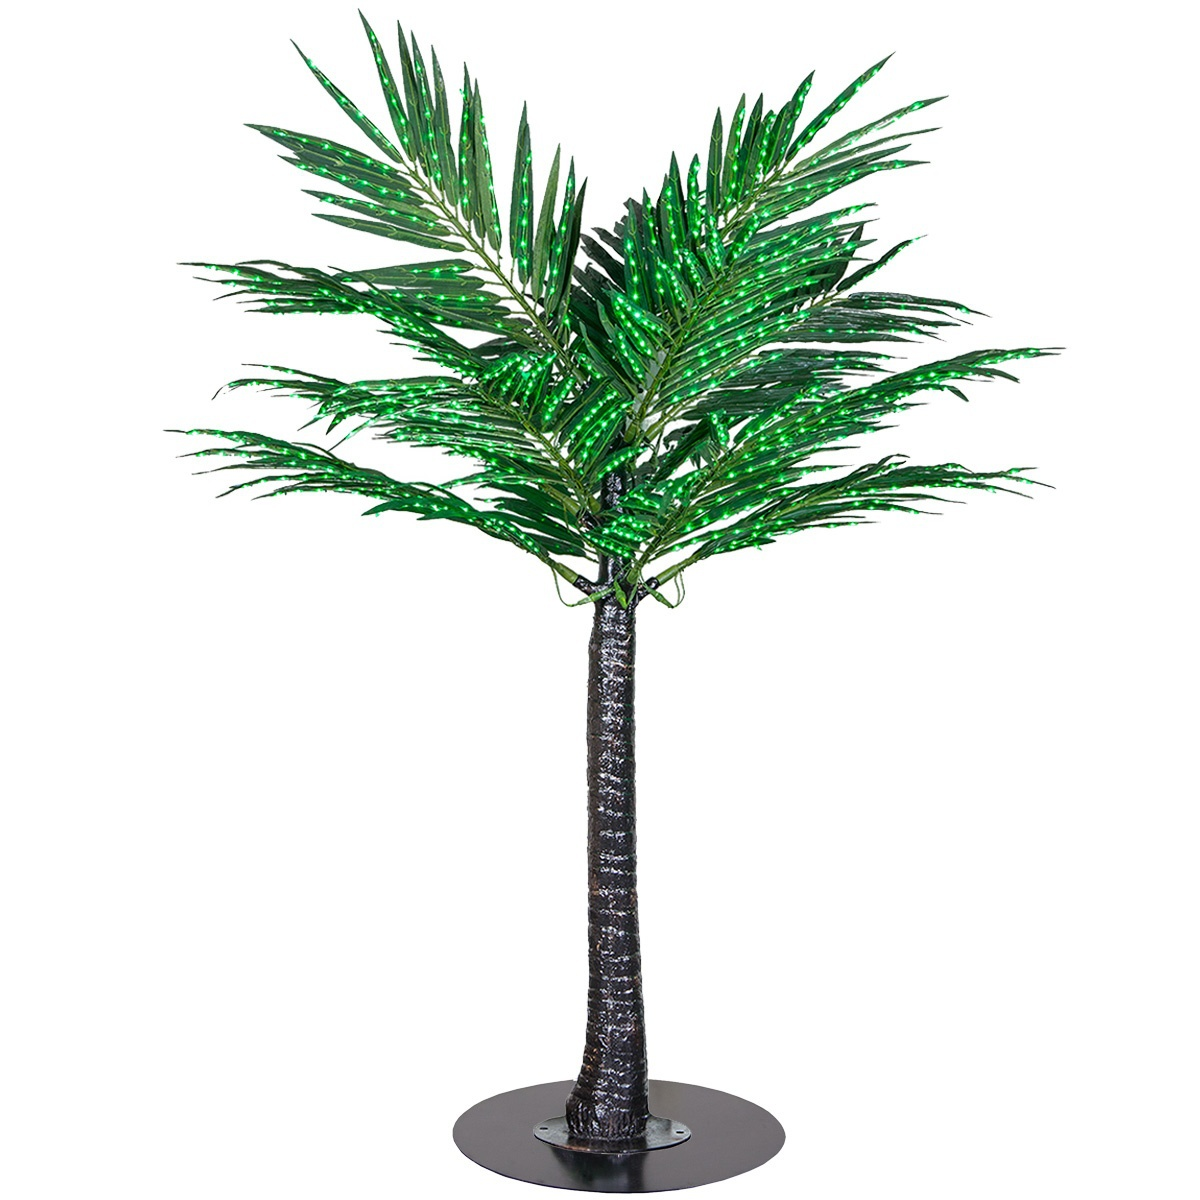 Commercial Lighted Palm Tree with Base